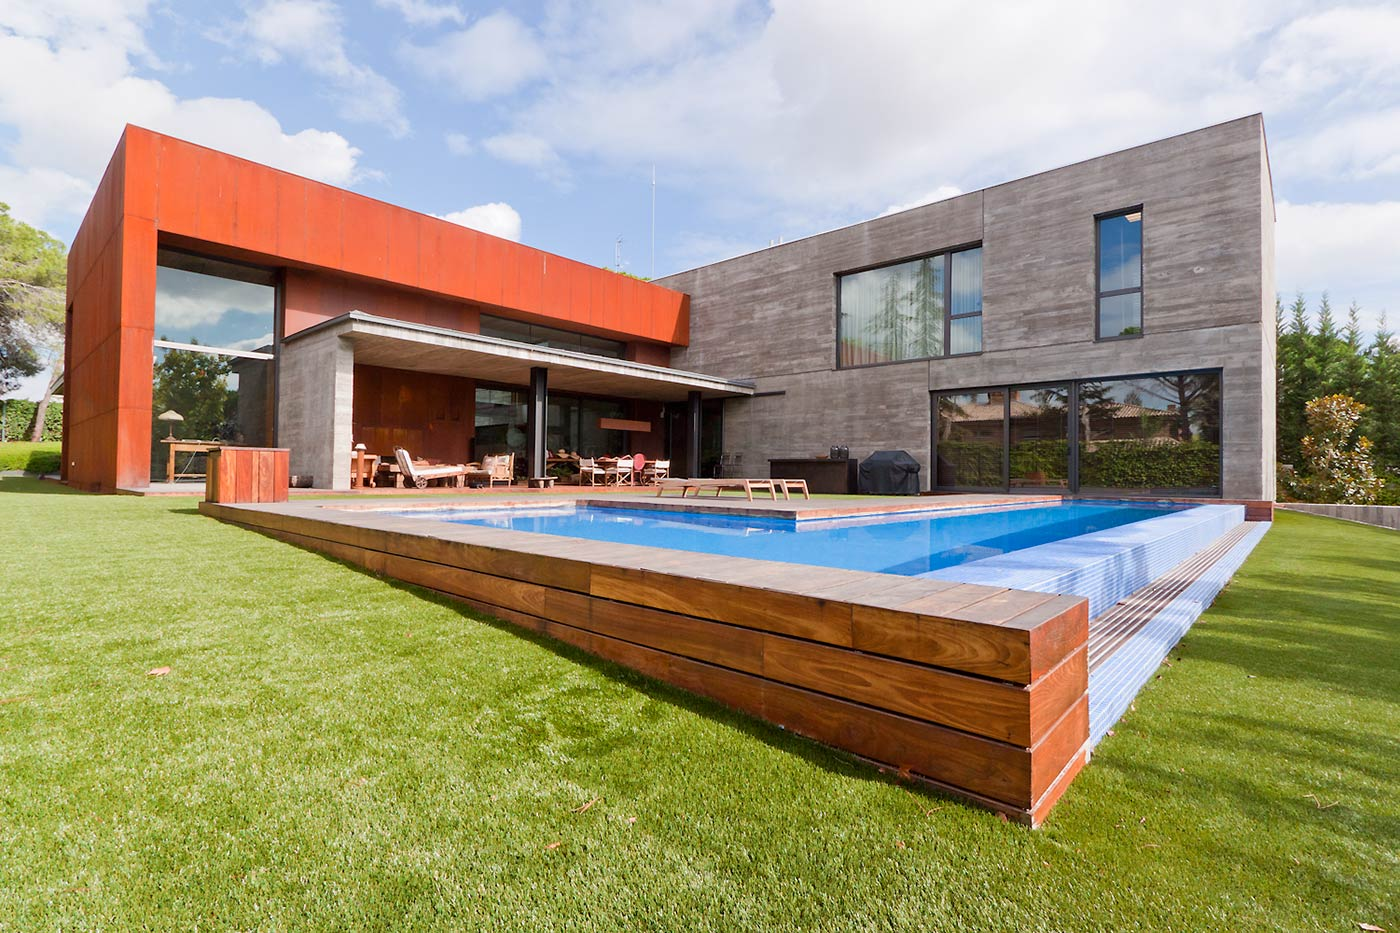 Madrid Villa Offers Luxurious Escape From City Life